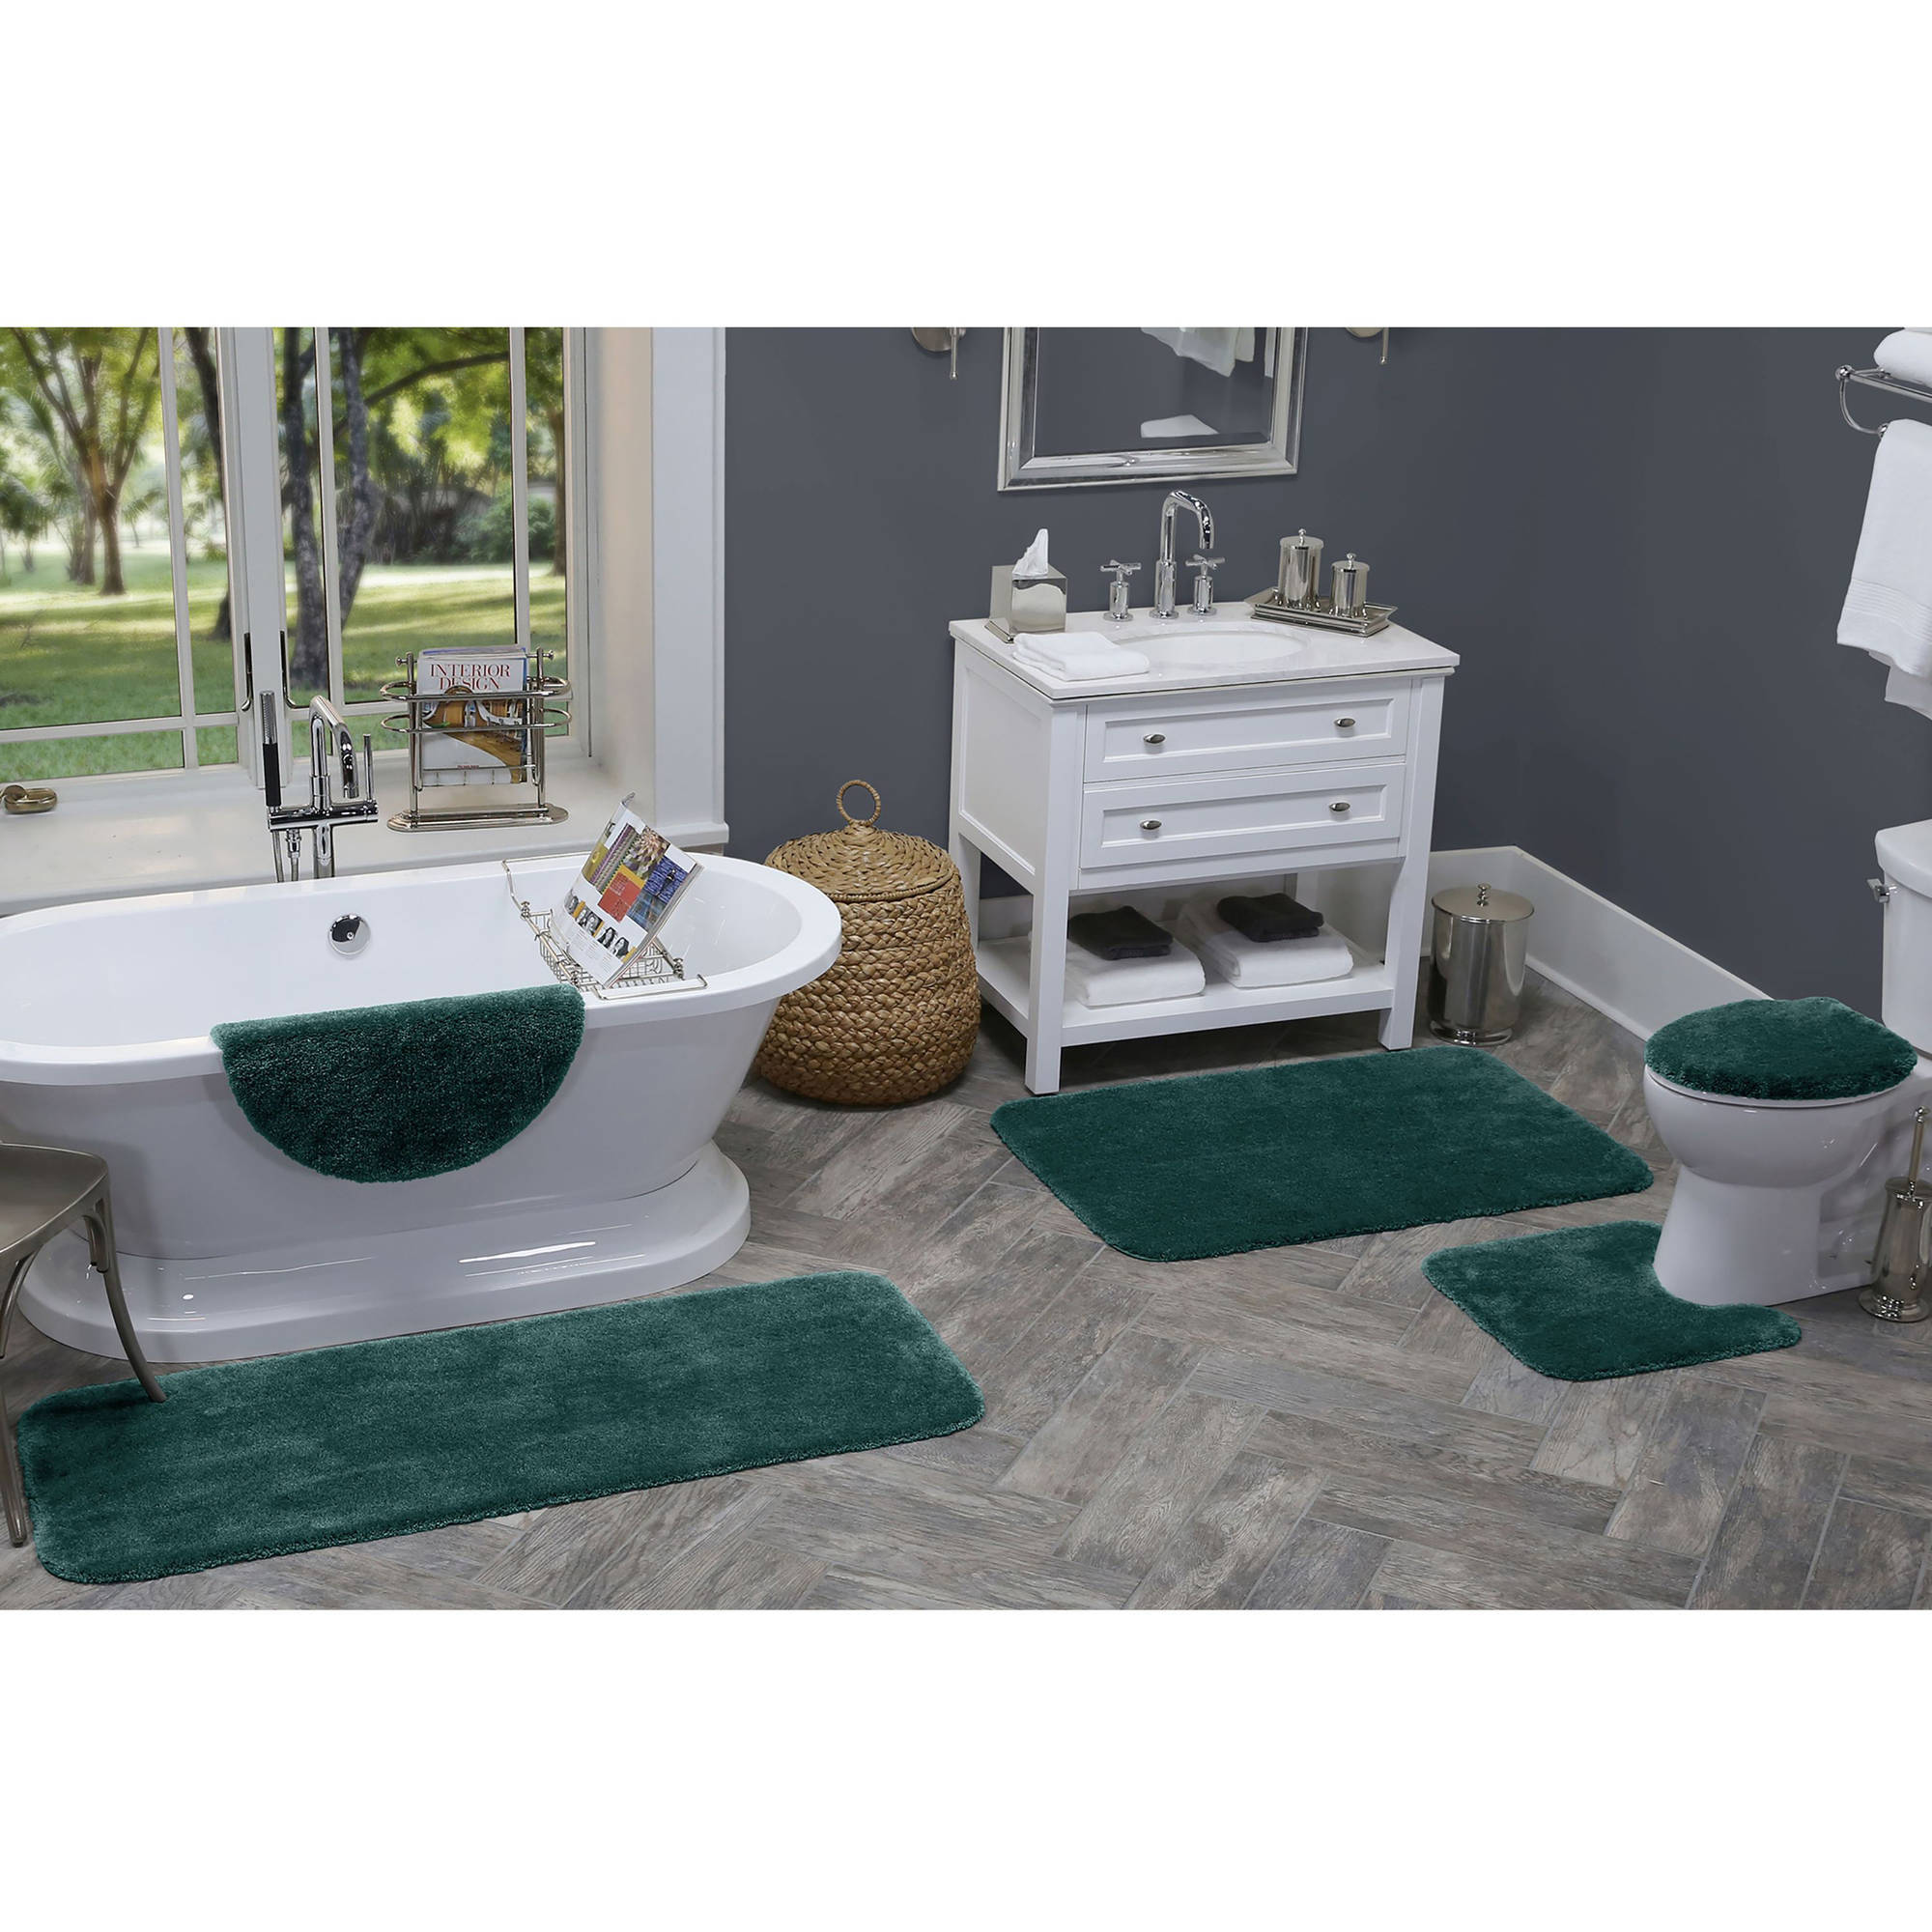 Better Homes And Gardens Bathrooms better homes and gardens extra soft bath rug collection  walmart